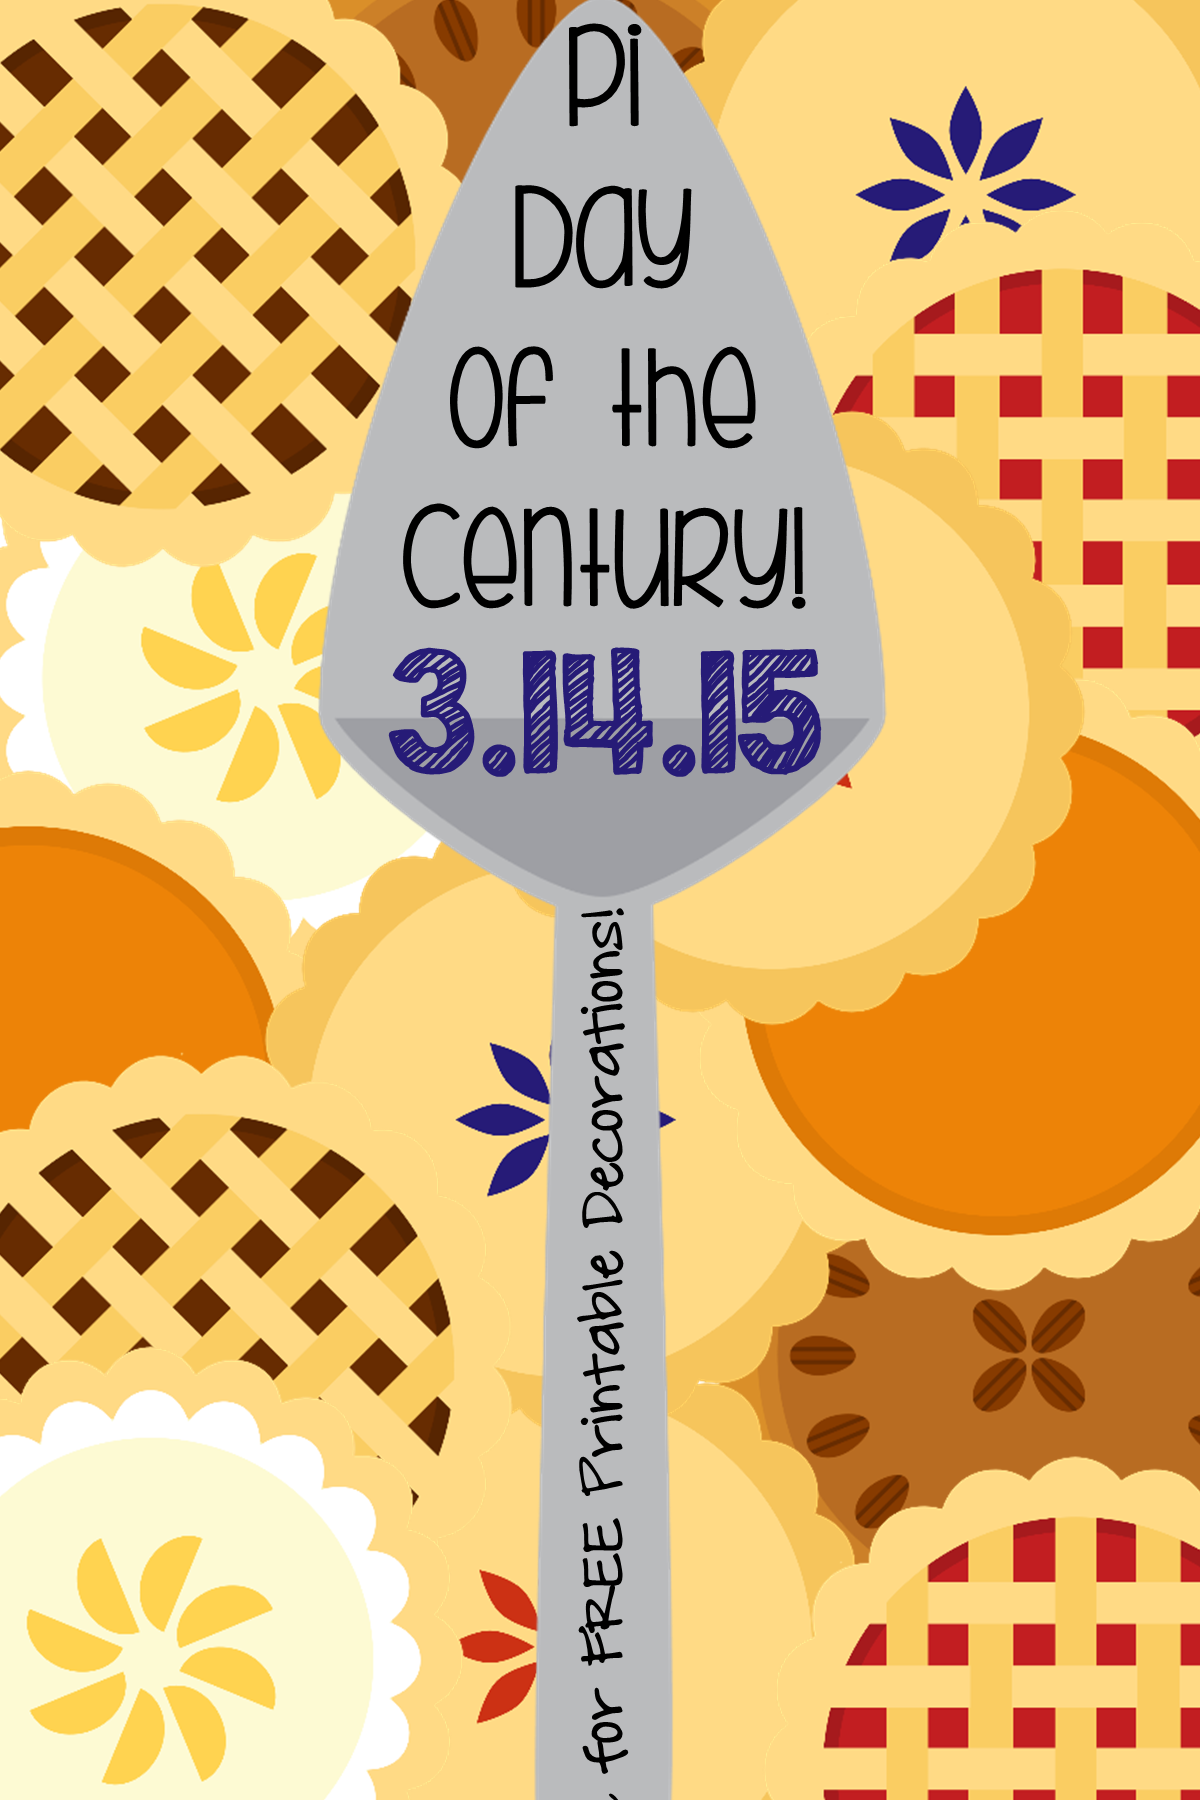 3 14 15 Pi Day Of The Century It S Going To Be Huge Find